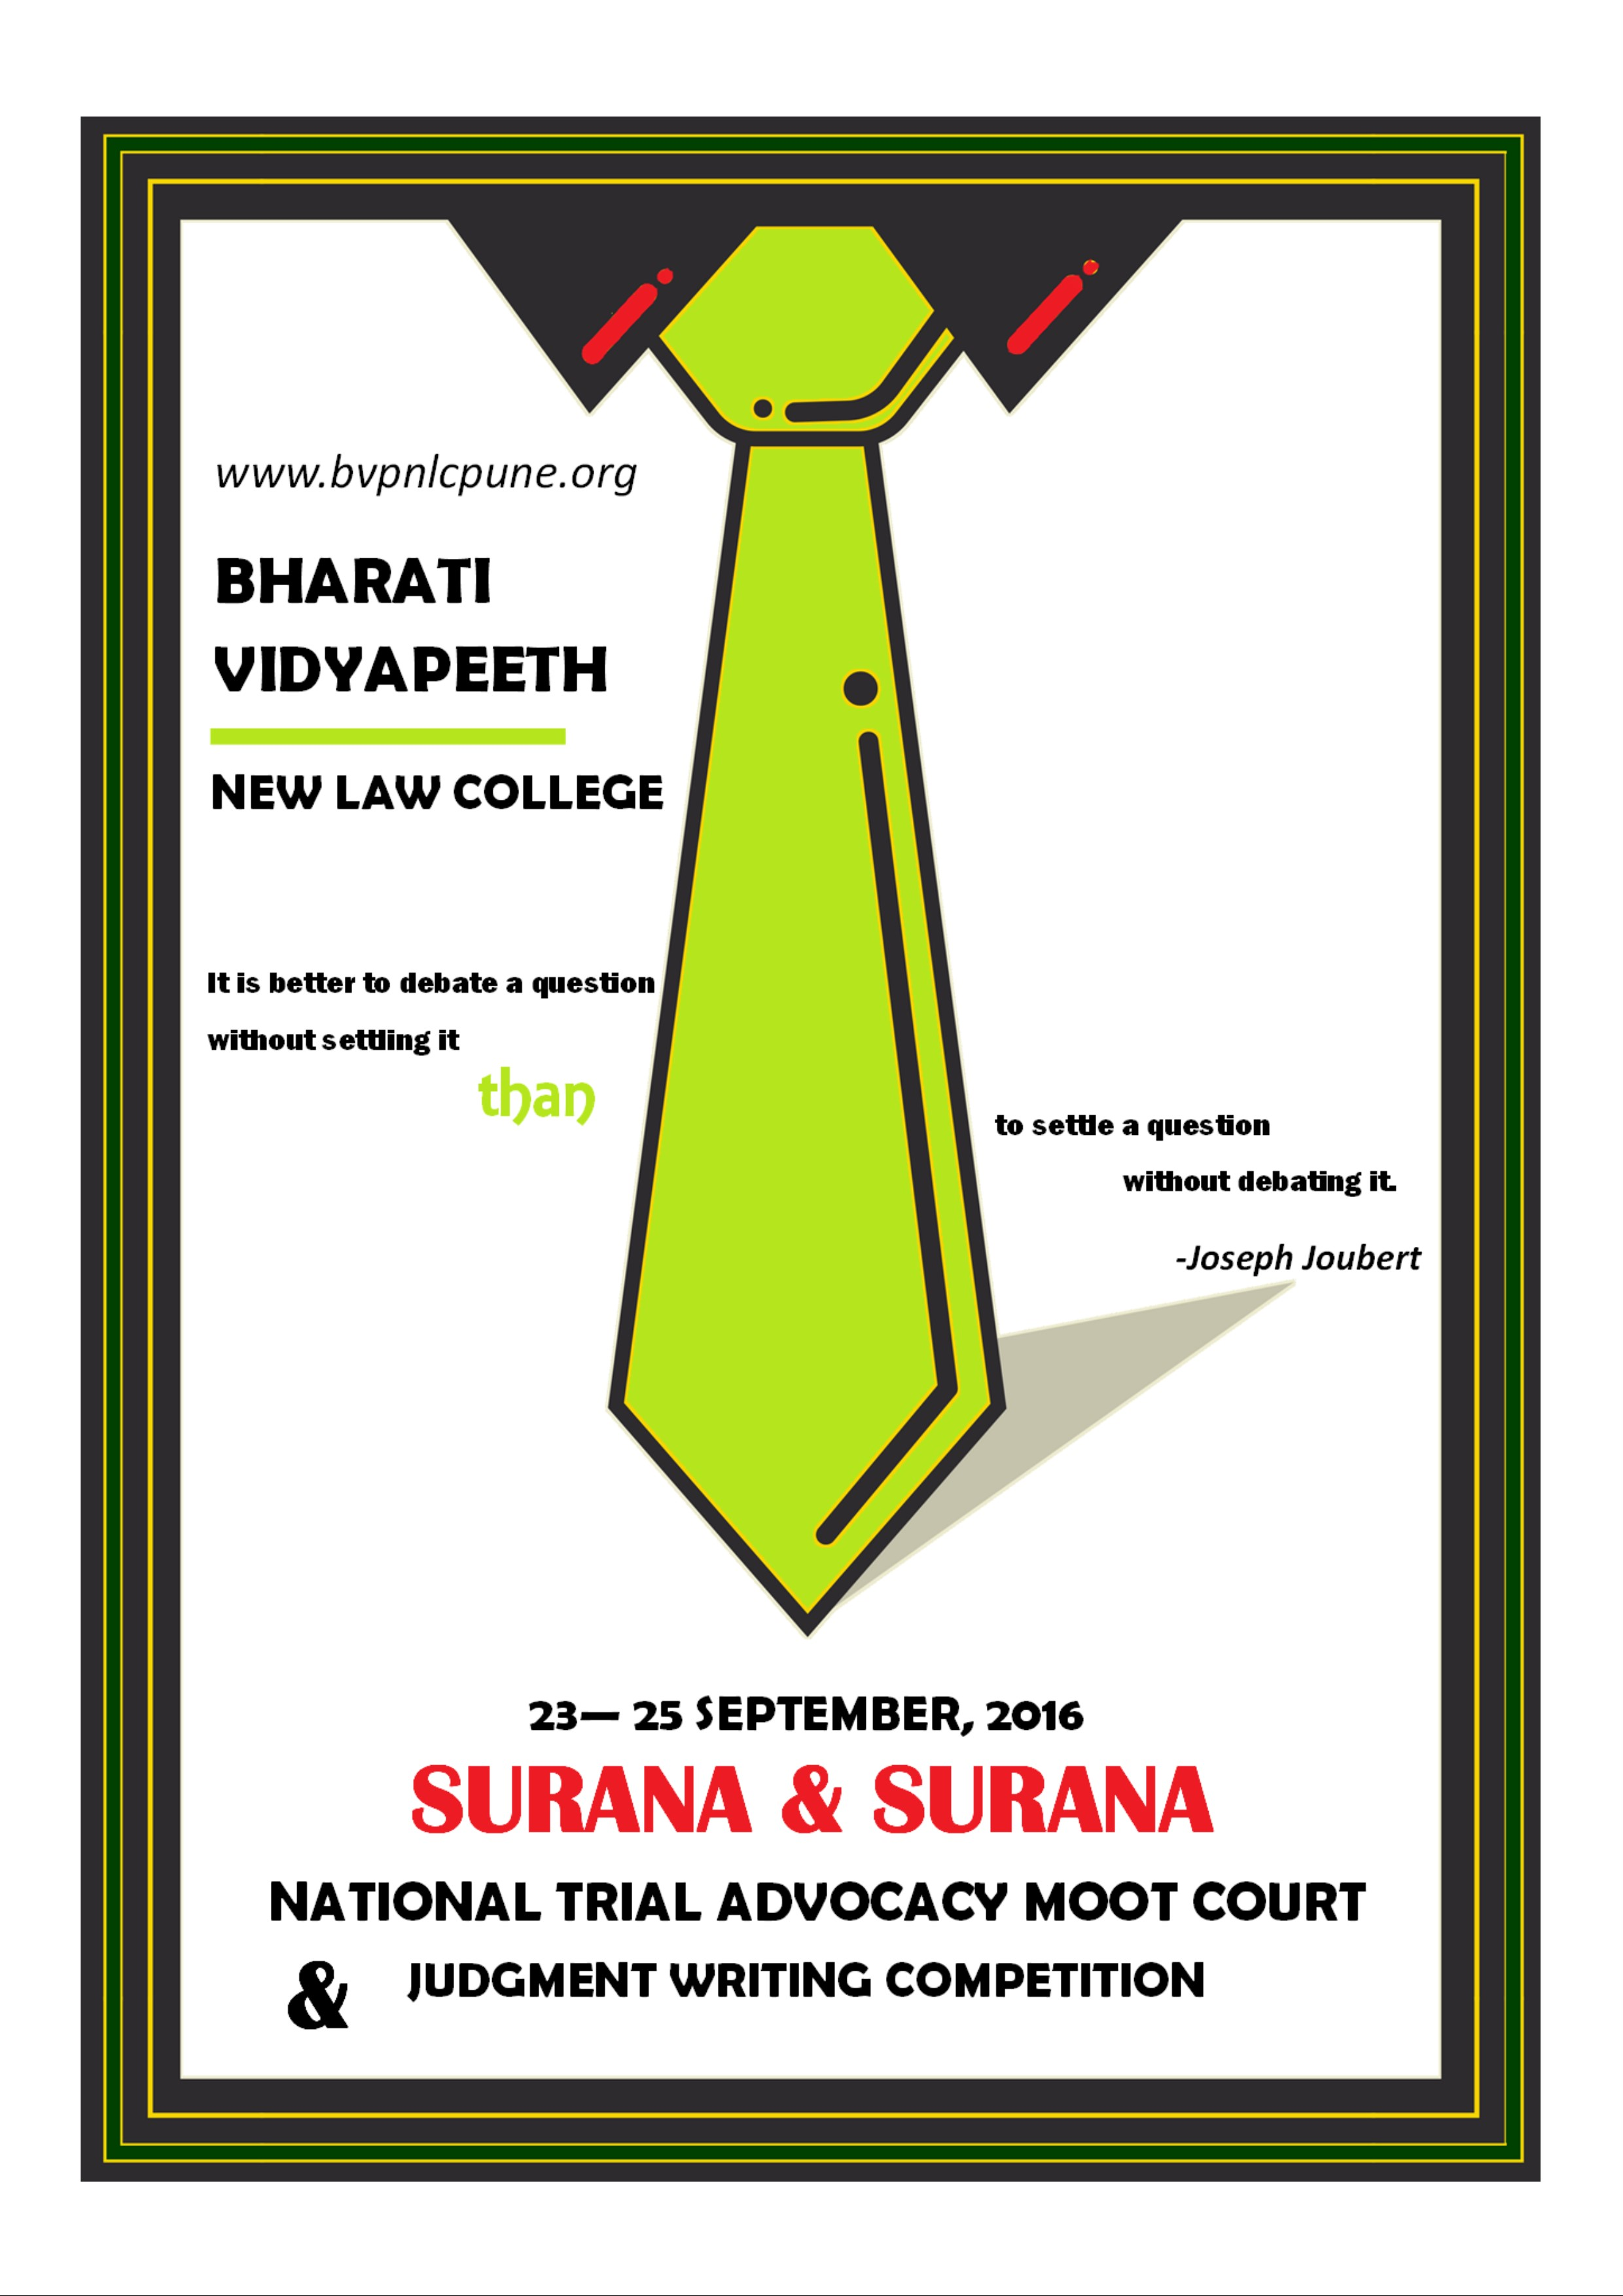 Surana and Surana National Trial Advocacy Moot Court and Judgment Writing Competition 2016